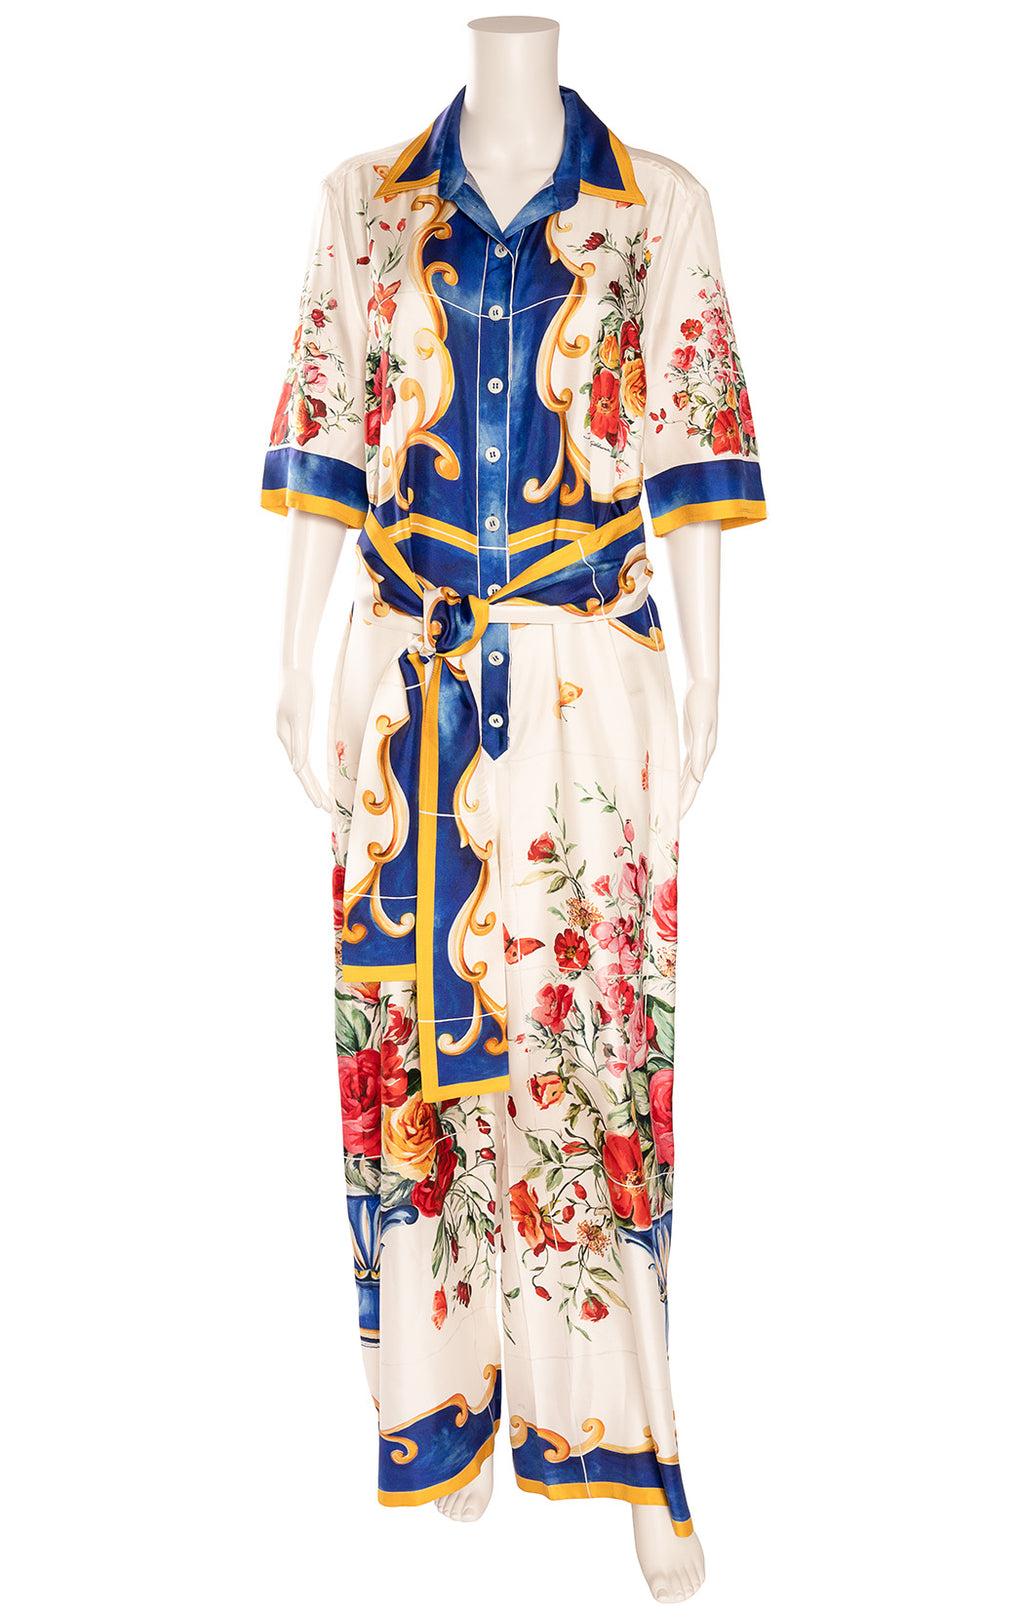 DOLCE & GABBANA  Jumpsuit  Size: IT 44 (comparable to US 8)